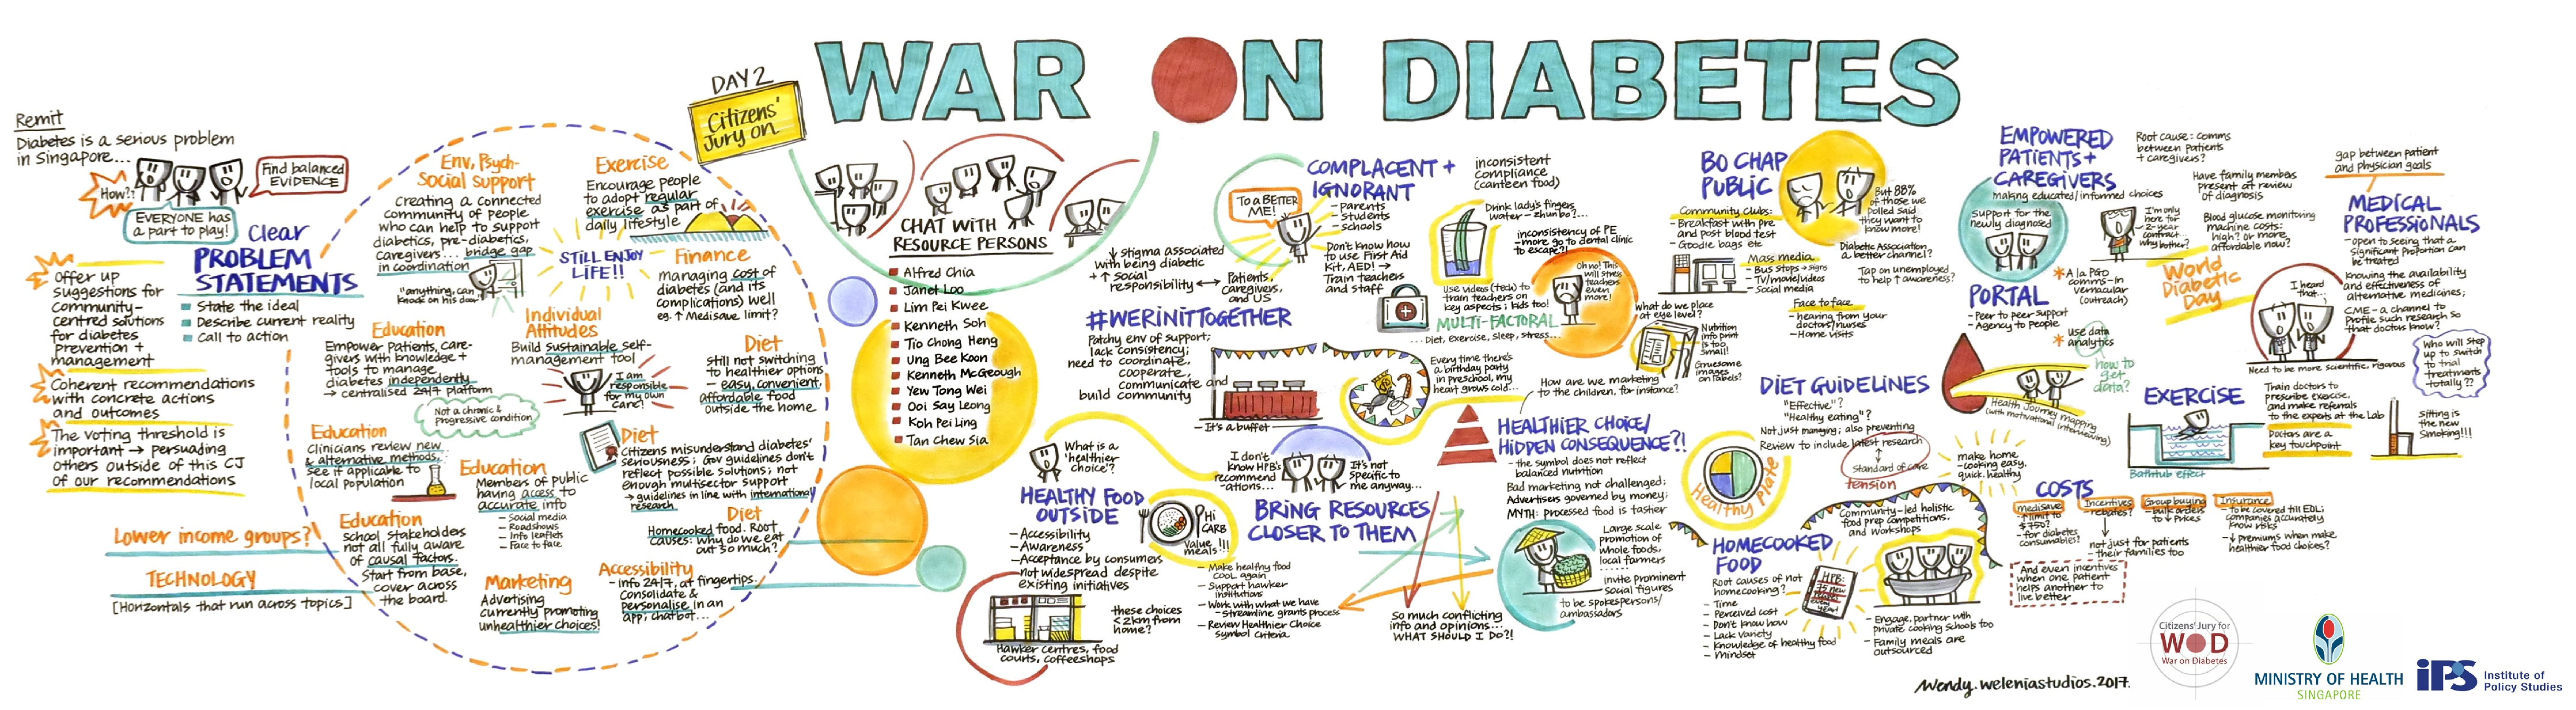 War on Diabetes - Infographic